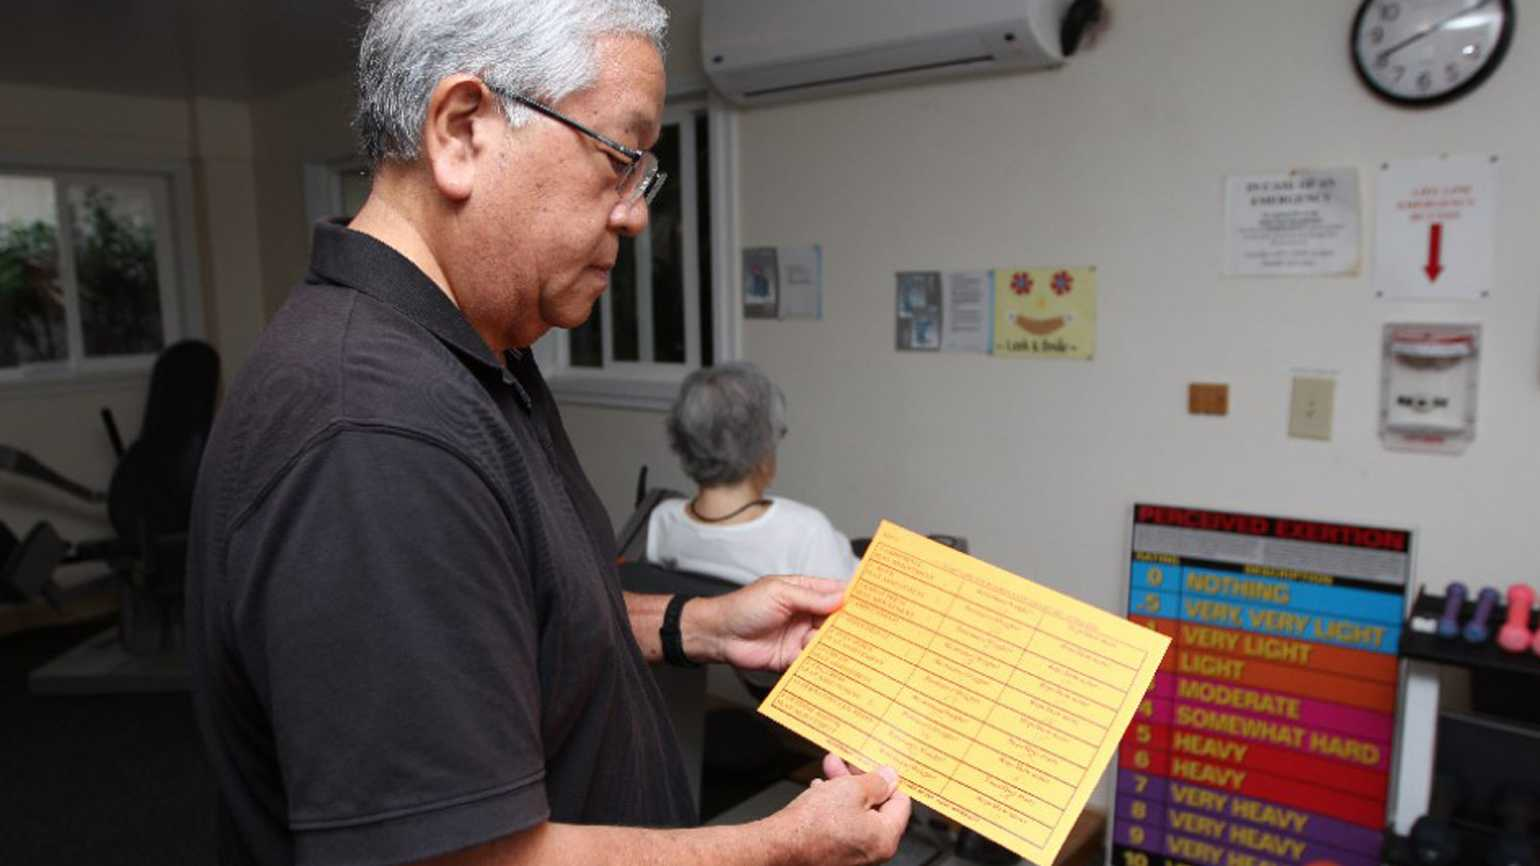 Randy Kimura shows the sheet that he and his mother-in-law, Janet Nakashima, use to keep track of her workouts.